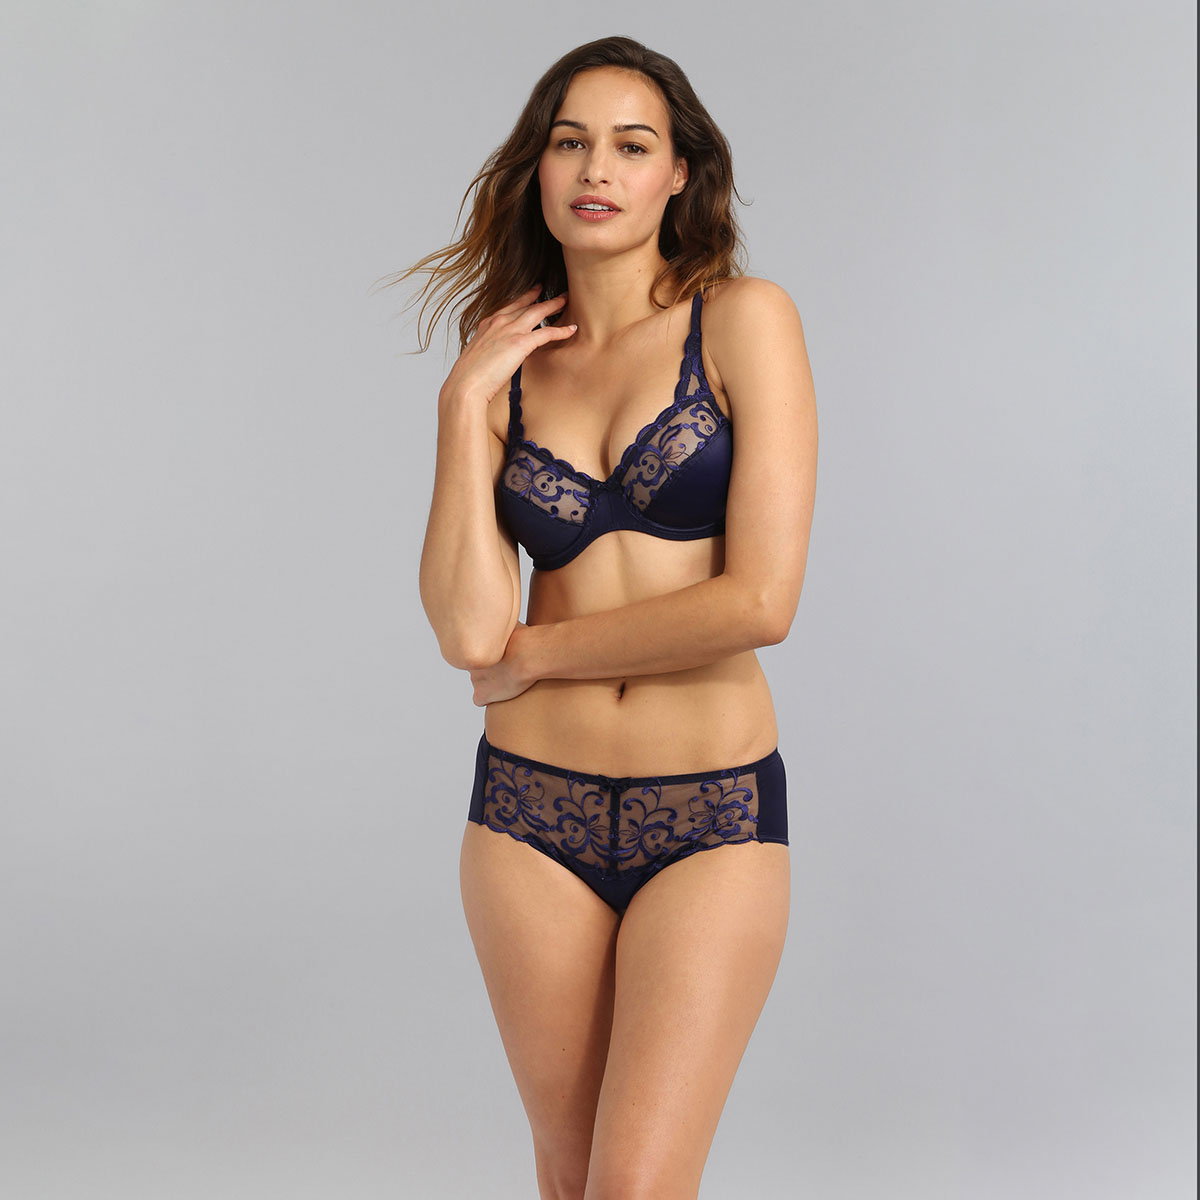 Midi knickers in navy Essential Elegance Embroidery, , PLAYTEX